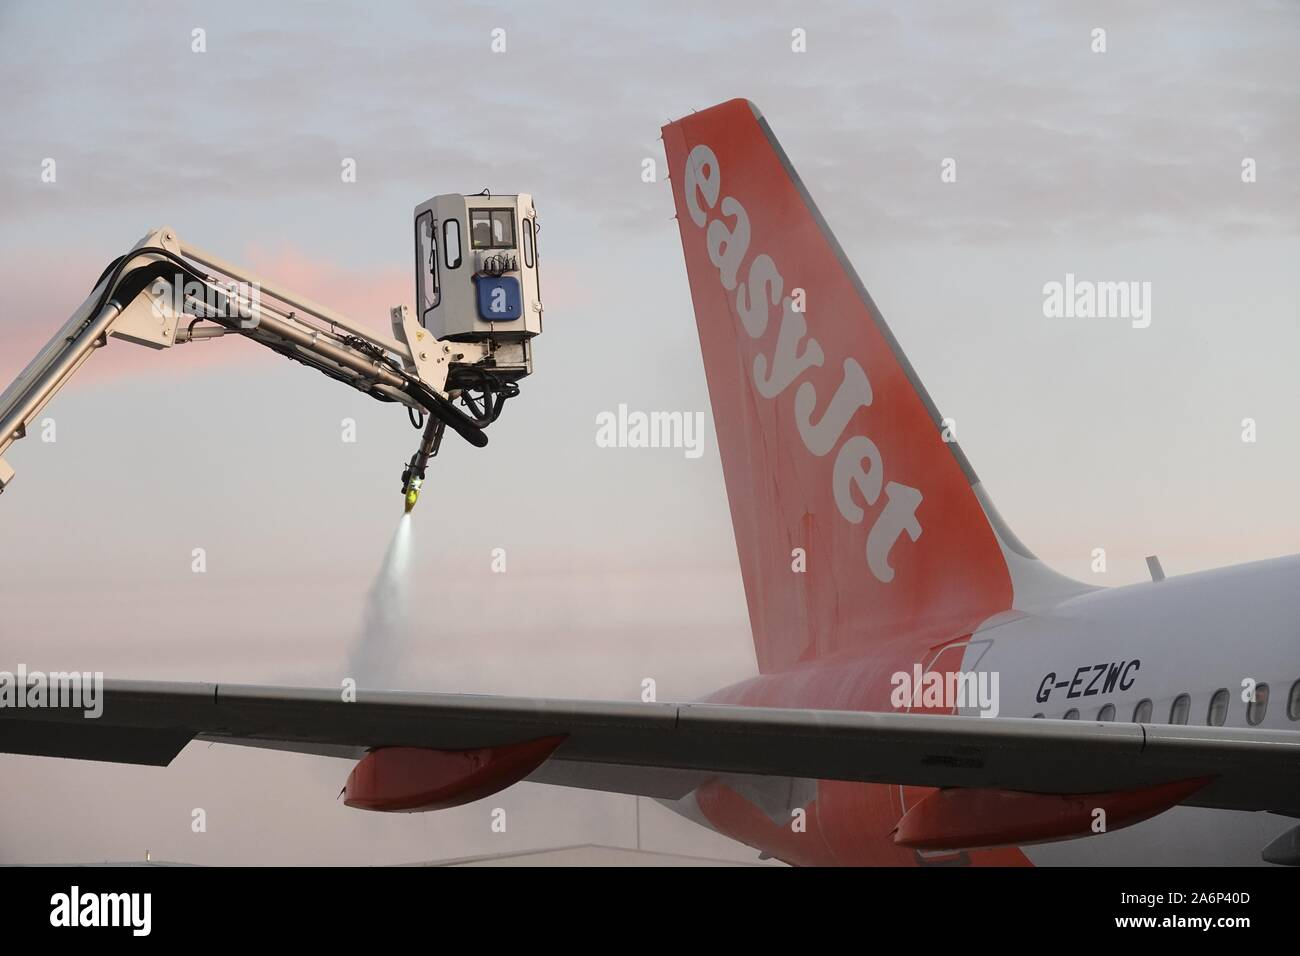 luton-airport-28th-october-2019-aircraft-from-the-easyjet-fleet-are-de-iced-on-this-cold-and-frosty-morning-credit-mick-flynnalamy-live-news-2A6P40D.jpg